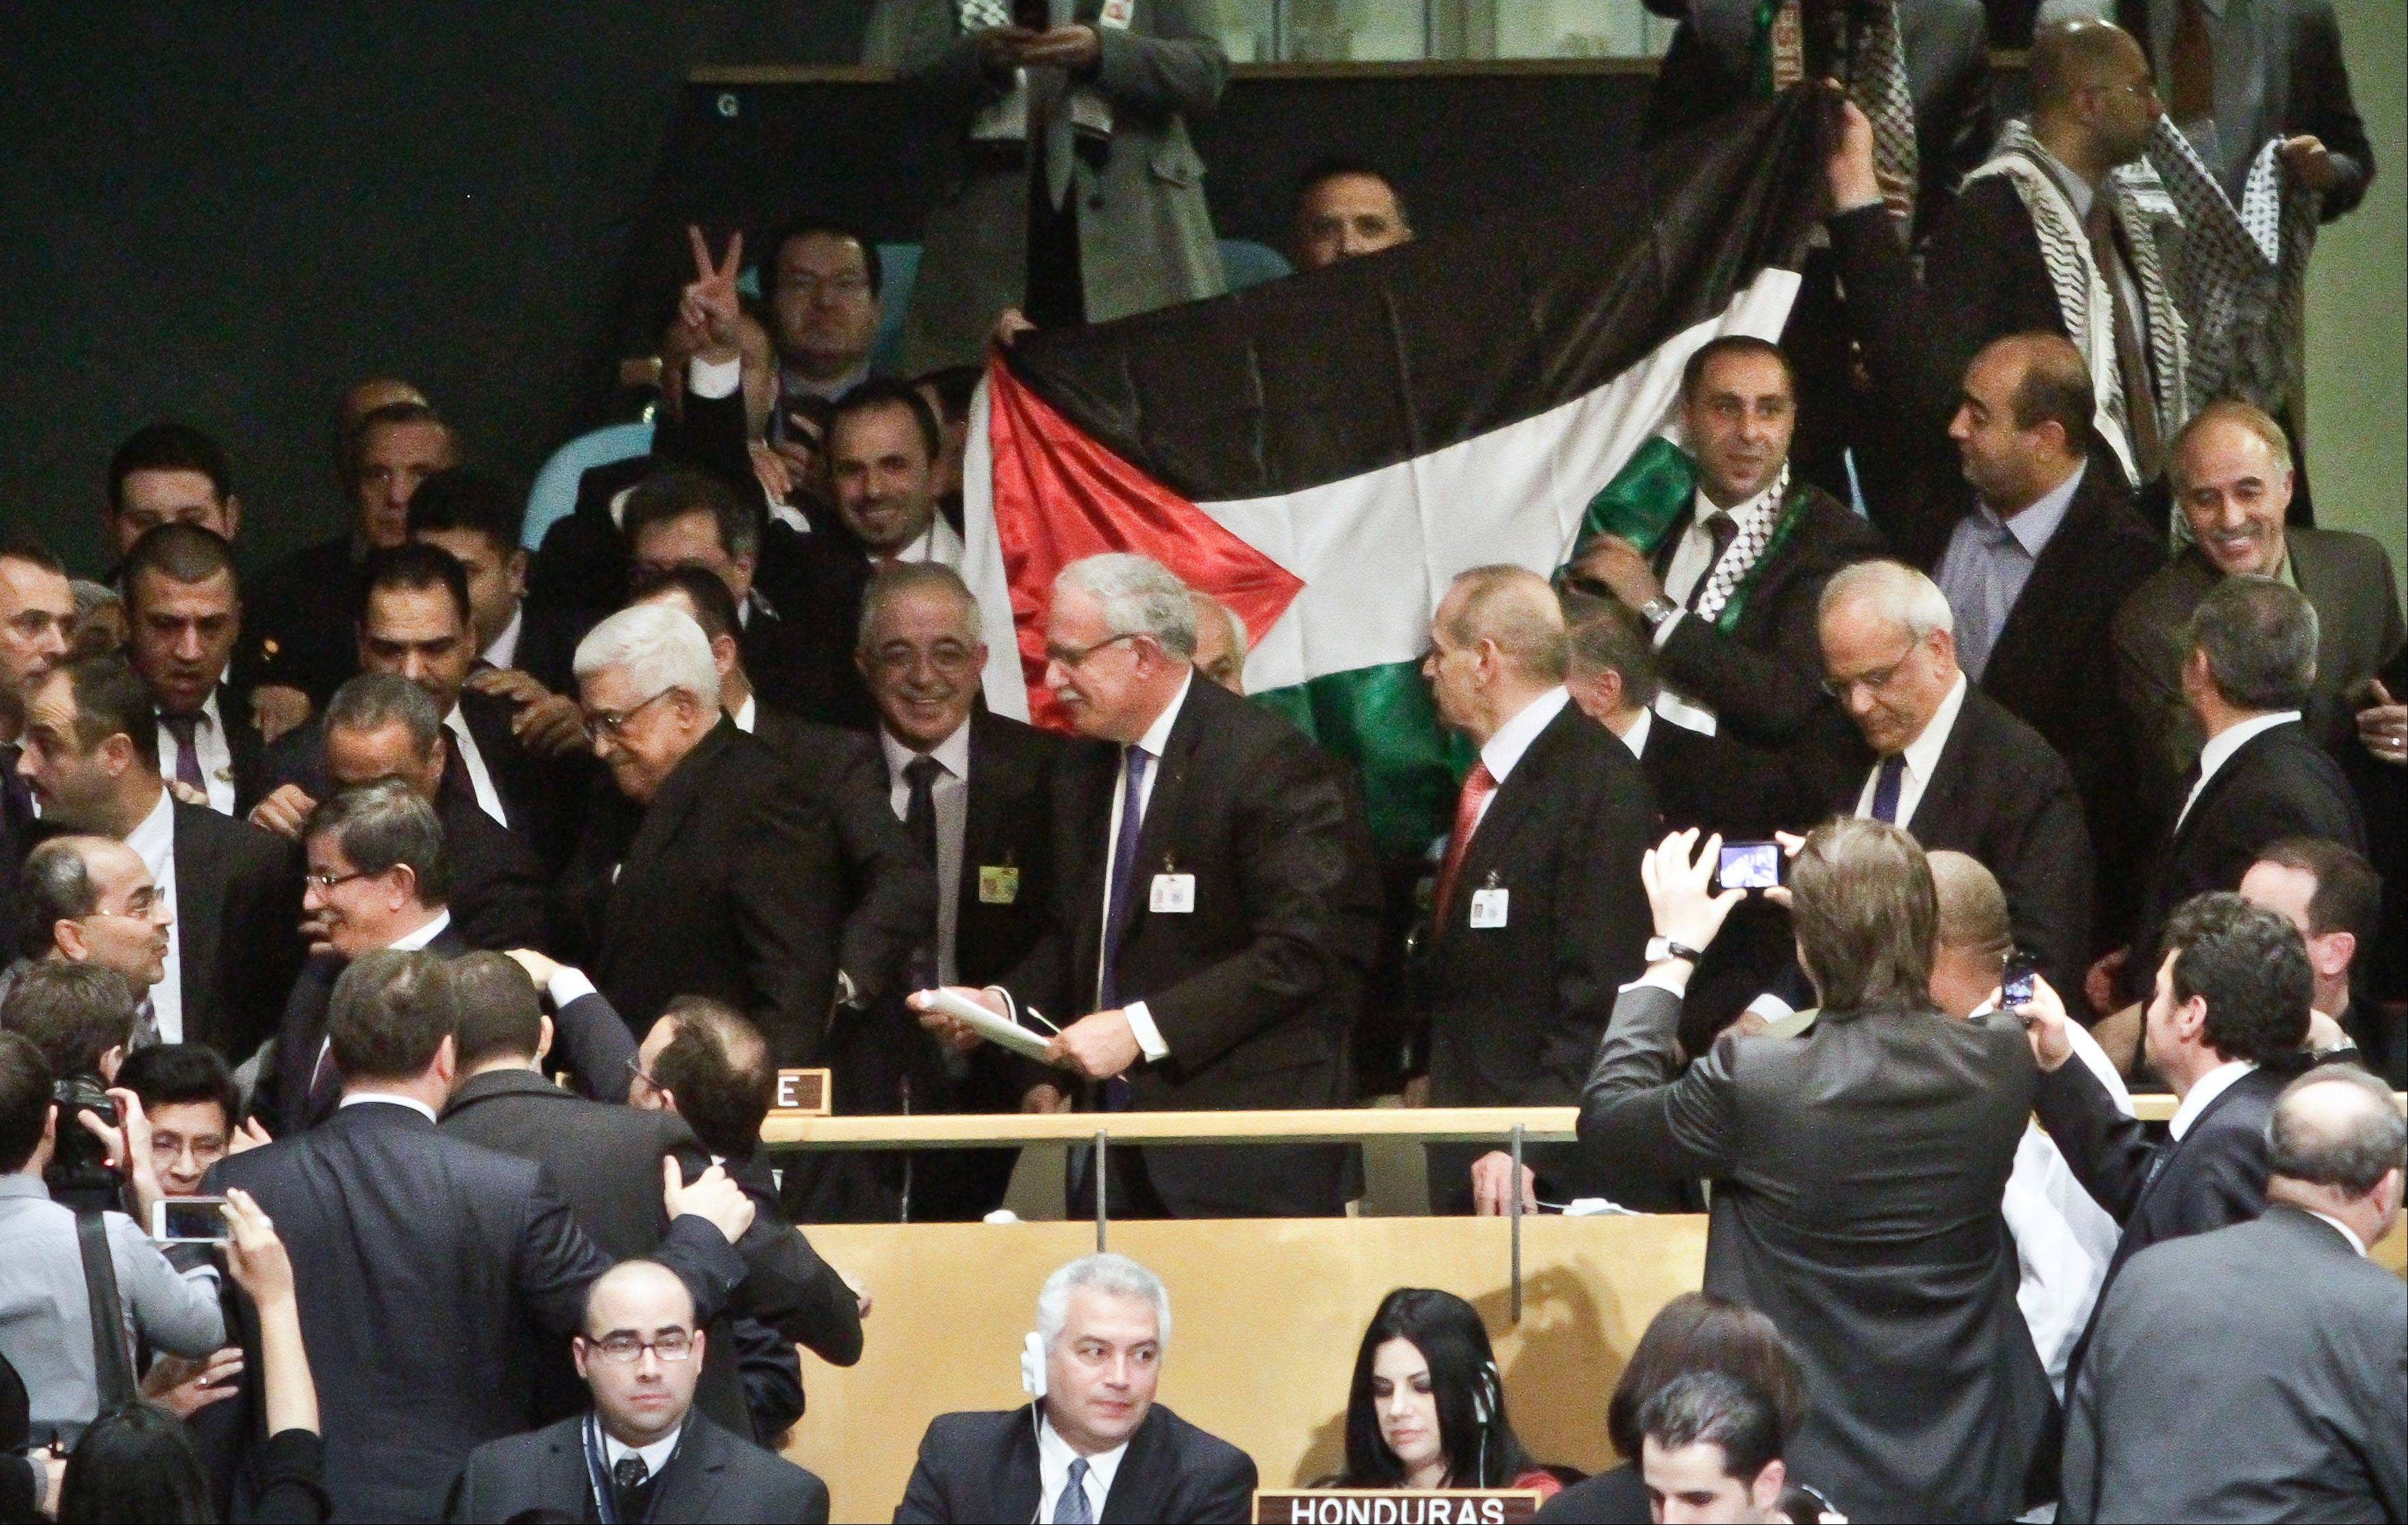 A Palestinian flag is displayed as Palestinian President Mahmoud Abbas leads his delegation from the U.N. General Assembly after a vote recognizing Palestine as a state on Thursday, Nov. 29, 2012 in New York. Palestinians won the statehood vote, even as the U.S., Israel's closest ally, mounted a campaign to head off the General Assembly vote.